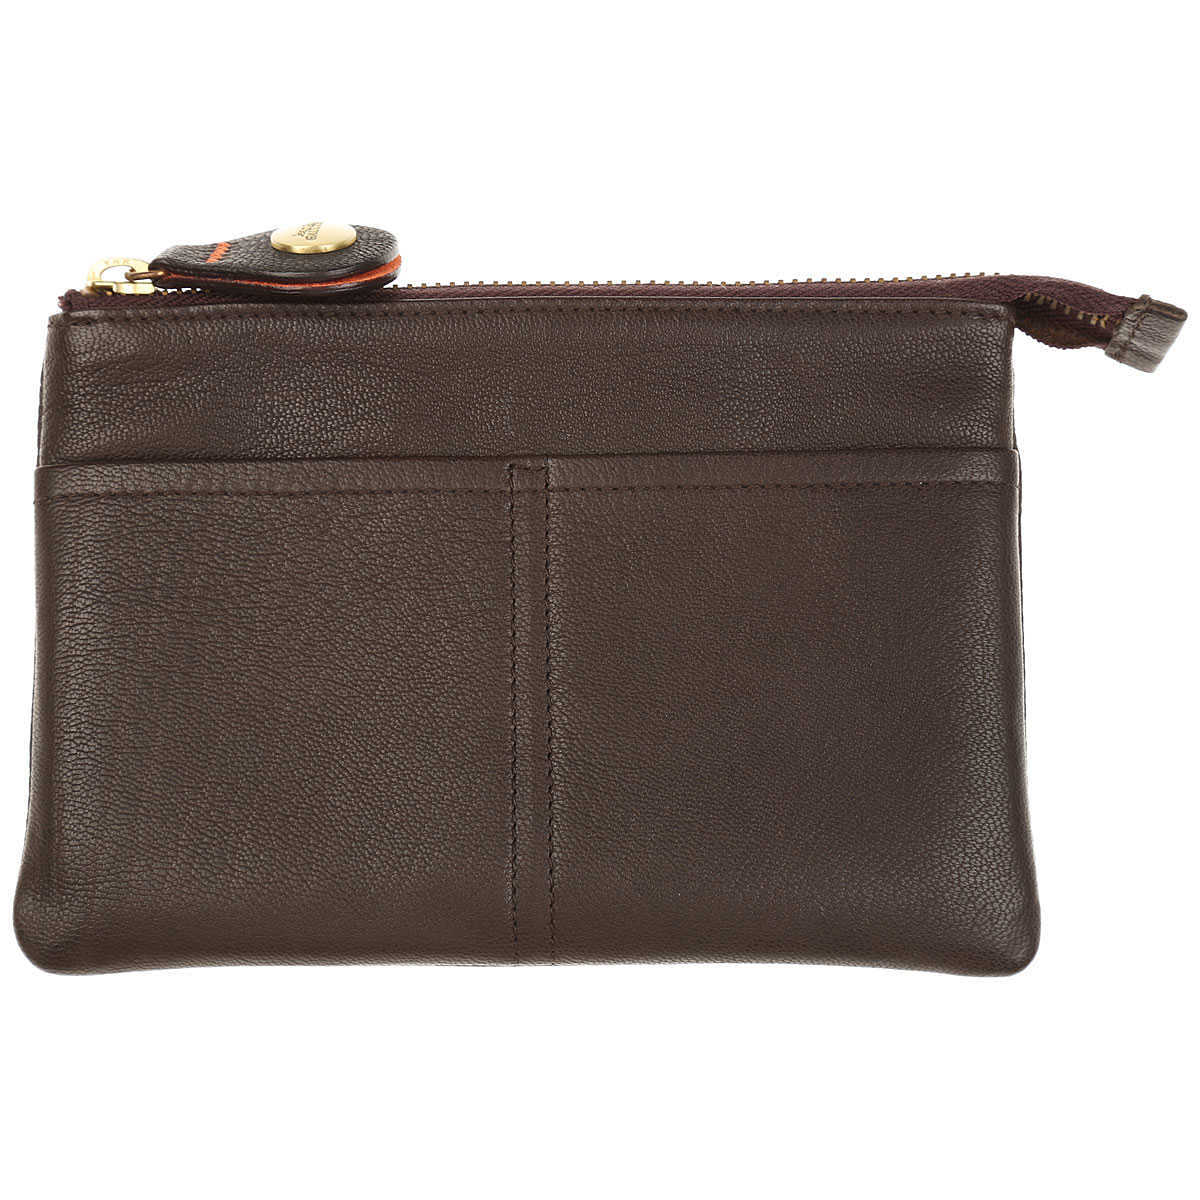 J.P. Gaultier Wallet for Men On Sale Dark Brown DK - GOOFASH - Mens WALLETS